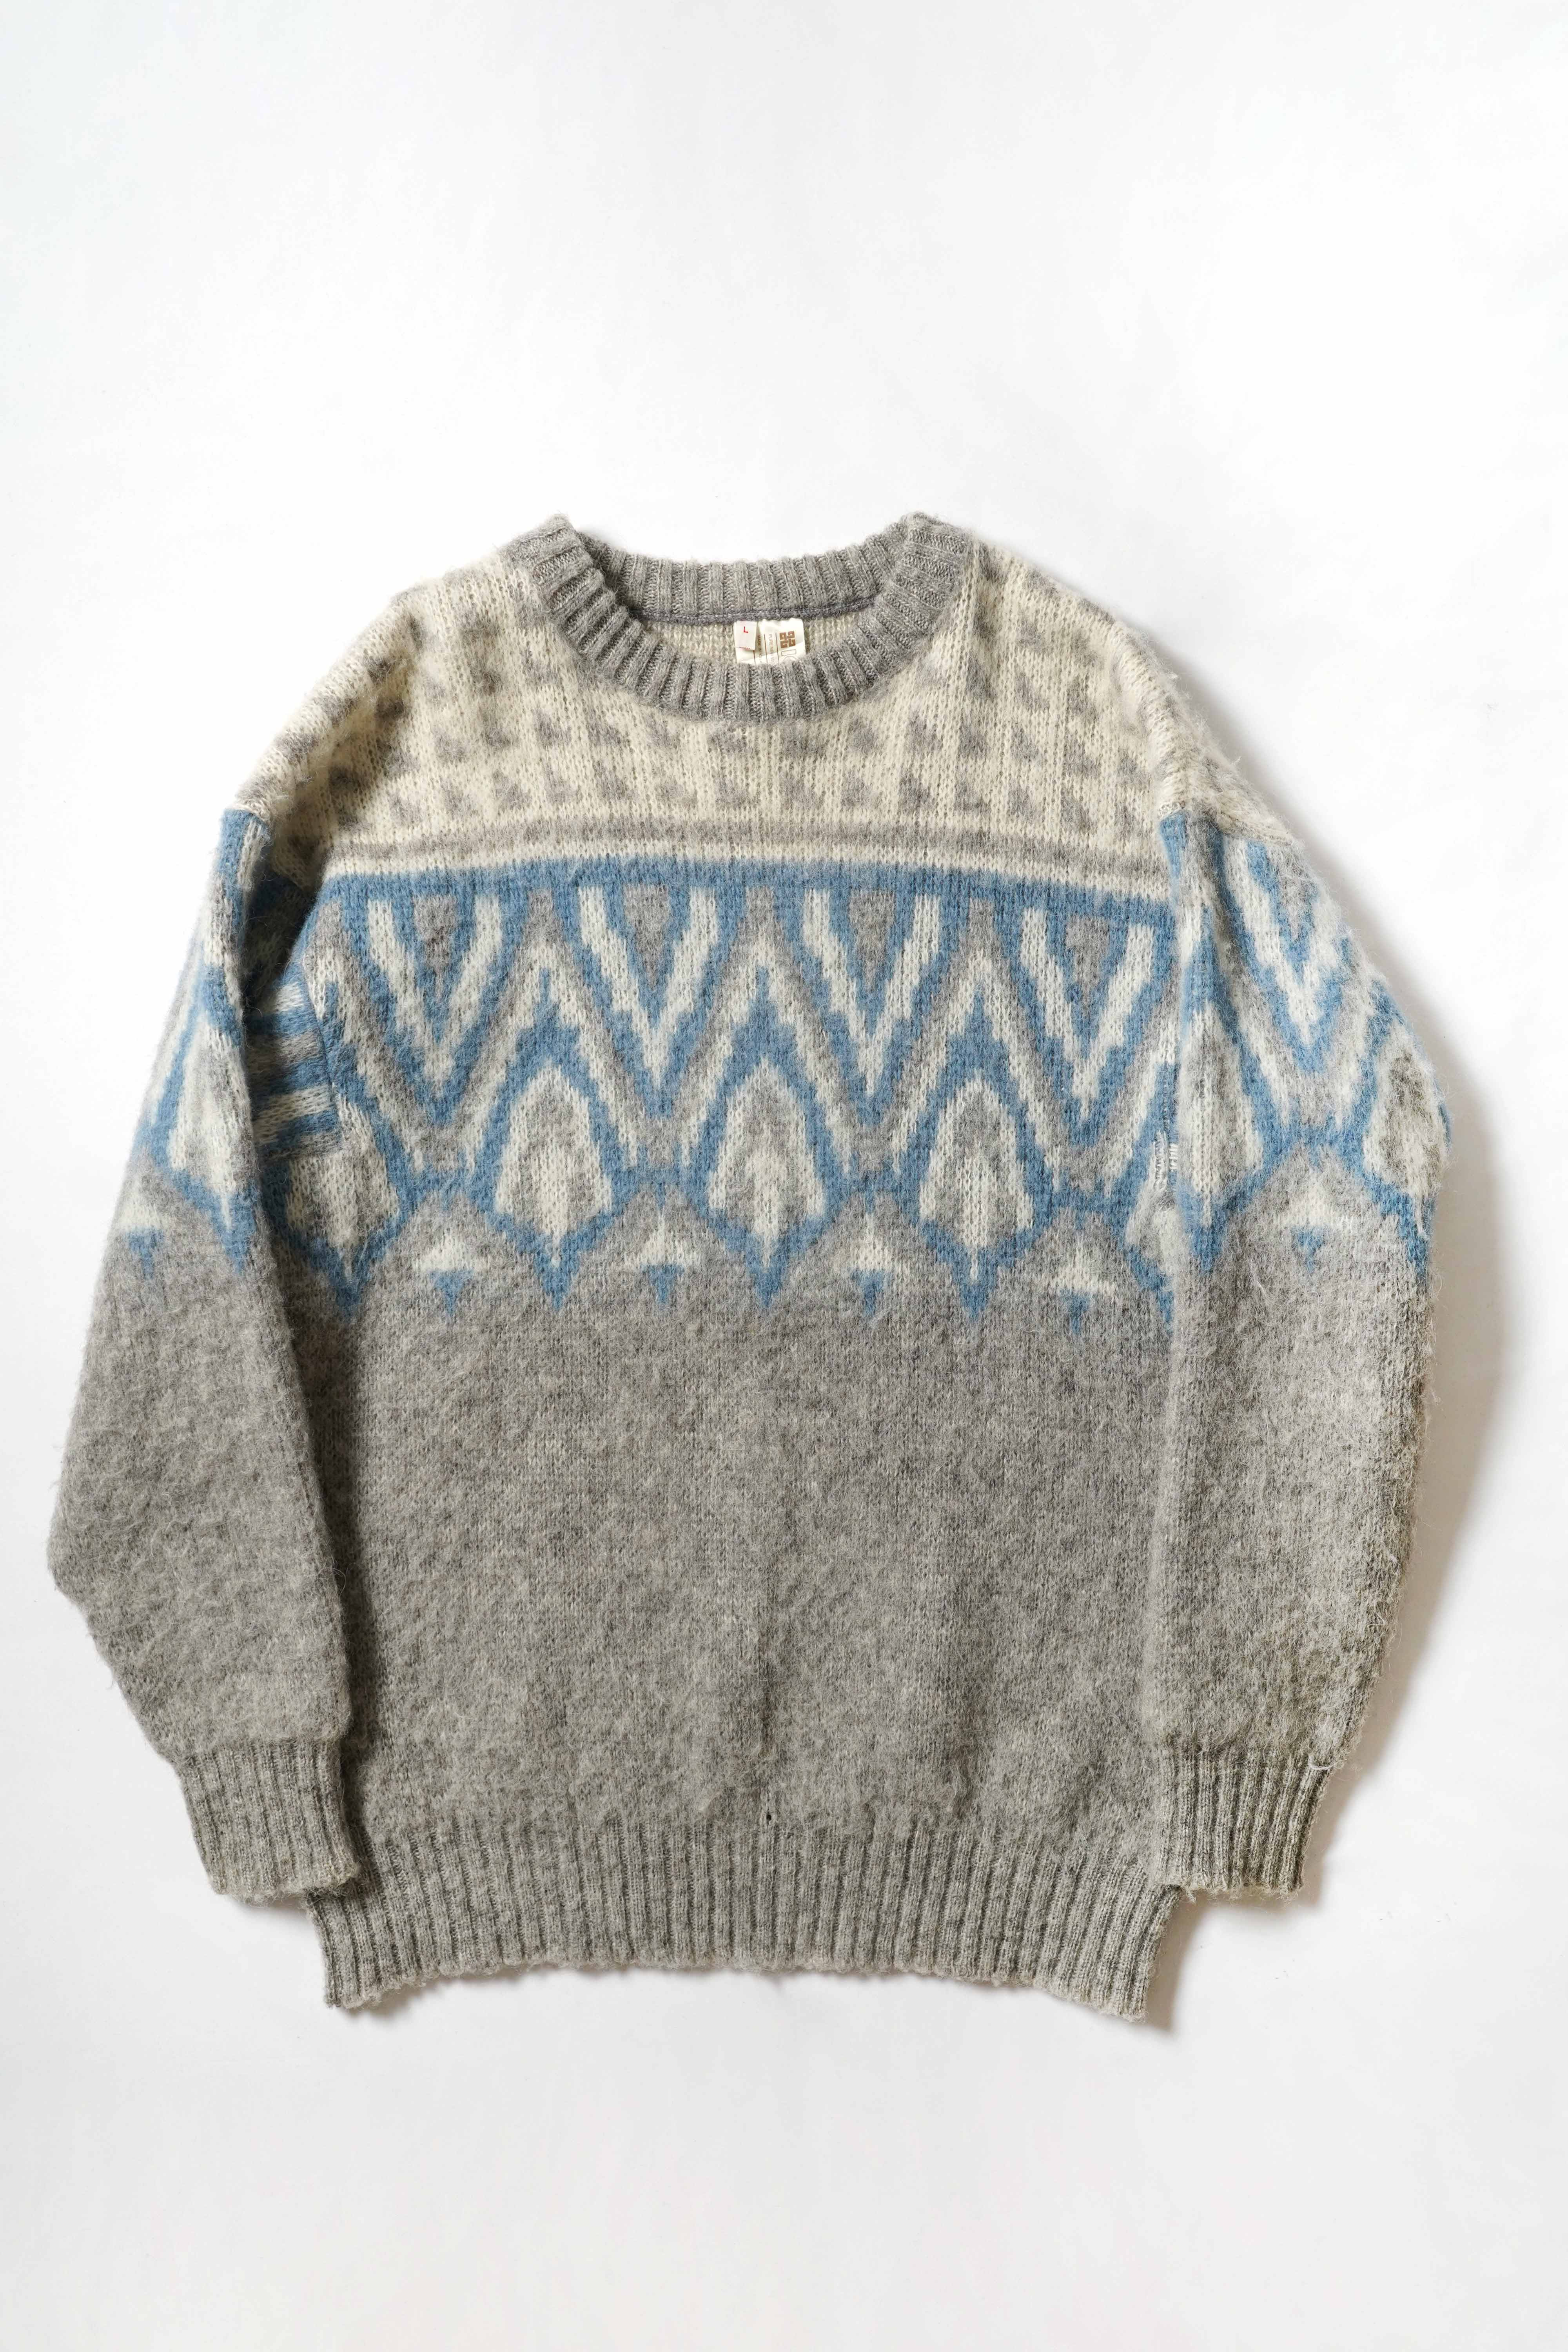 PATTERND KNIT SWEATER